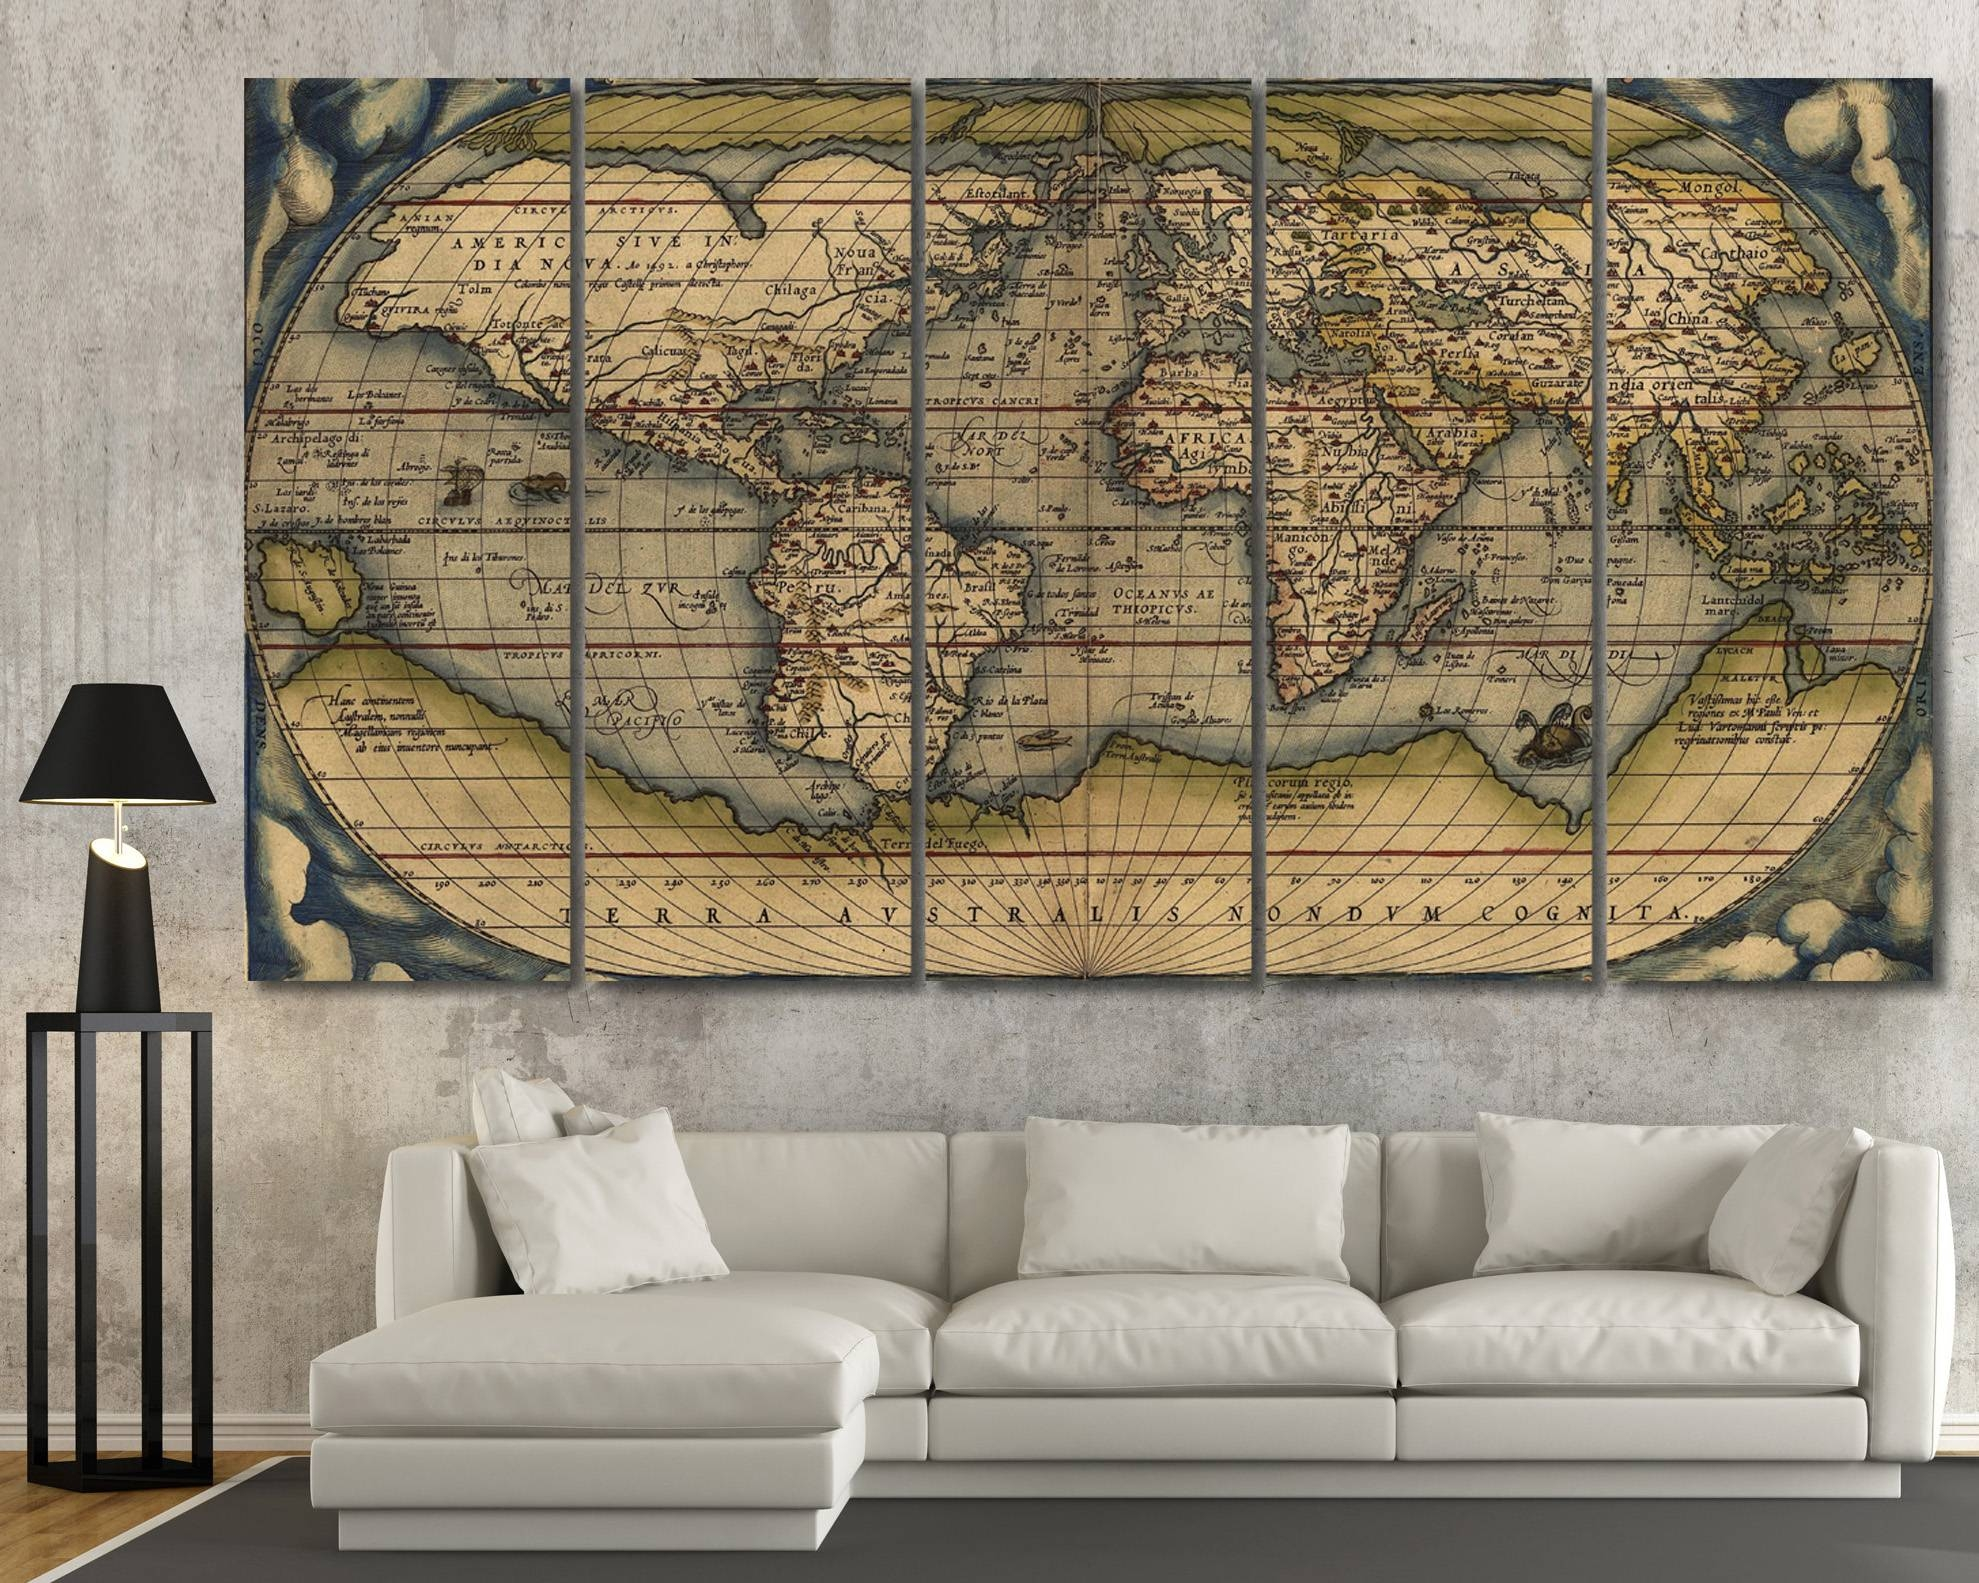 Large Vintage Wall Art Old World Map At Texelprintart With Regard To Latest Old Map Wall Art (View 5 of 20)